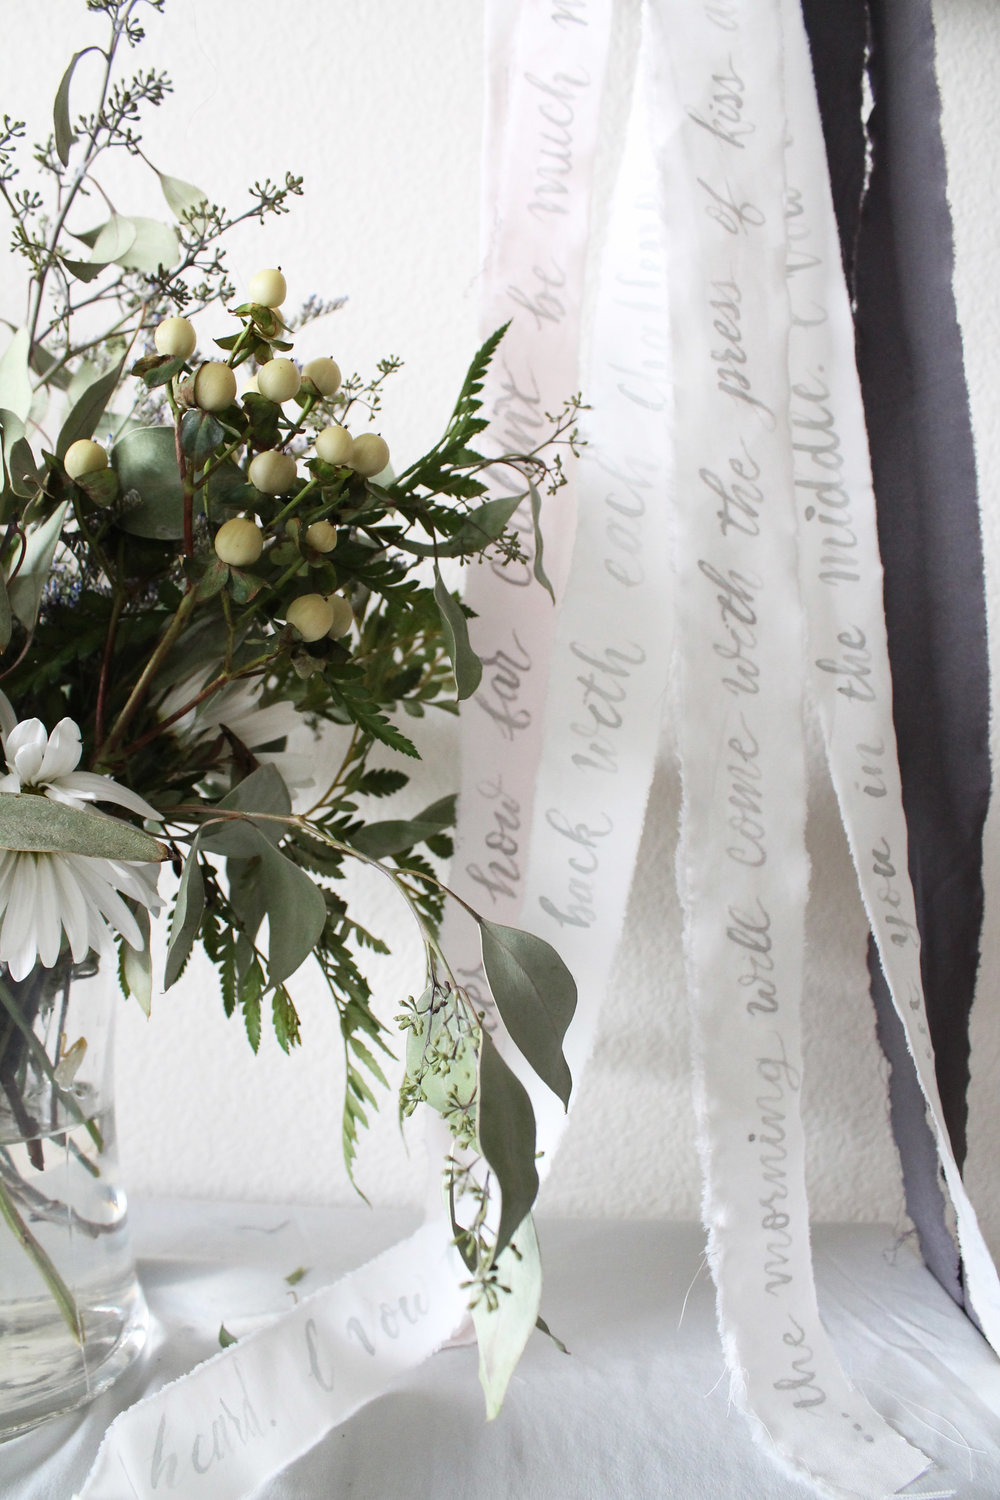 bouquet ribbon calligraphy for wedding day details. written song lyrics in calligraphy for bouquet